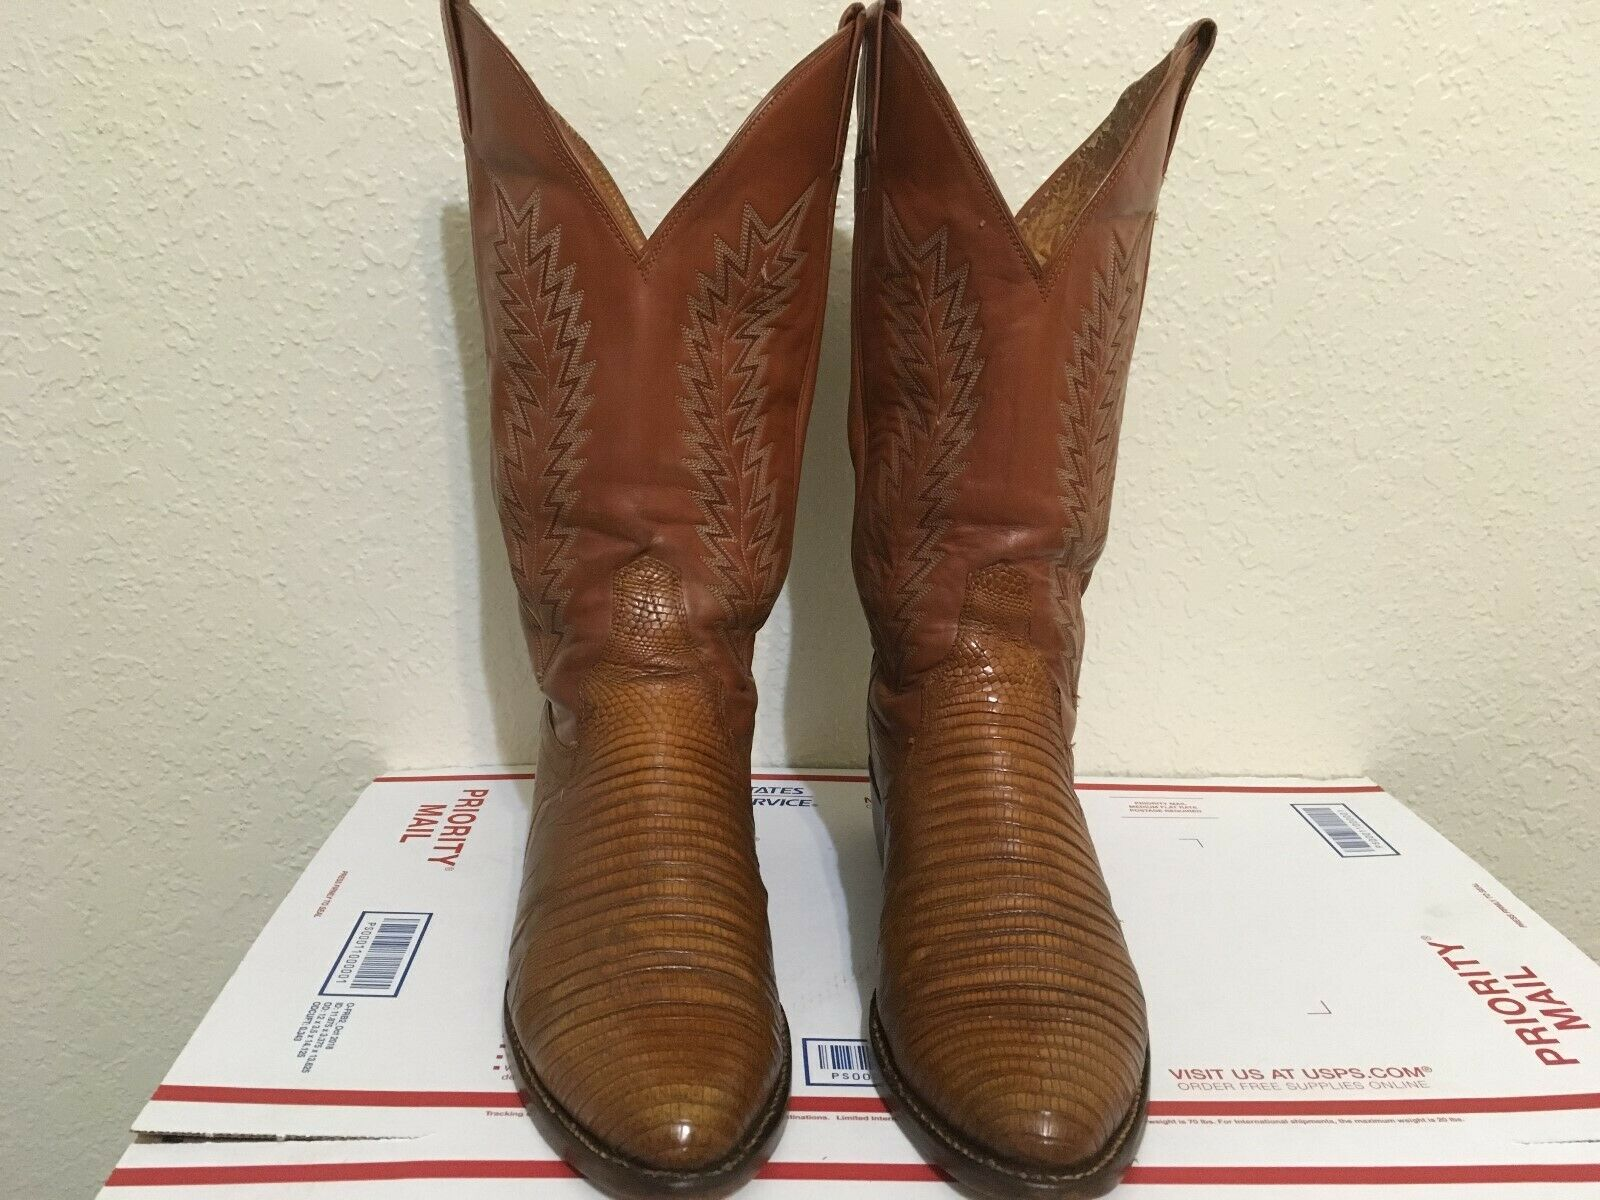 BROWN USA SANDERS VINTAGE LIZARD WESTERN TRAIL BOSS COWBOY BOOTS 9.5 D